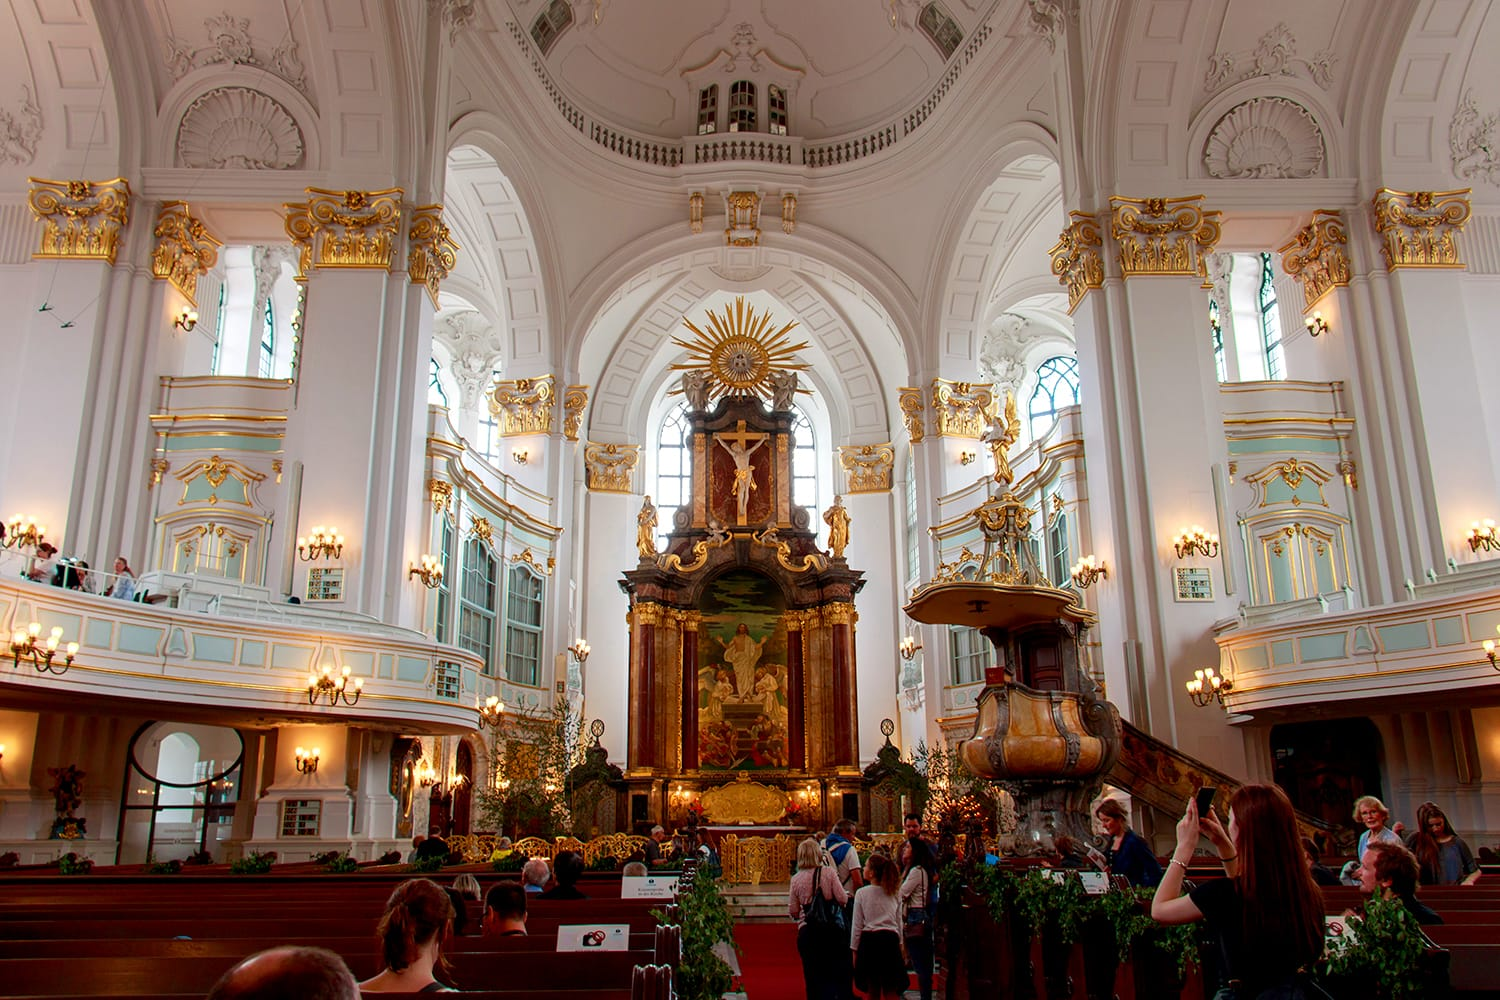 Interior of Saint Michael's Church in Hamburg, Germany